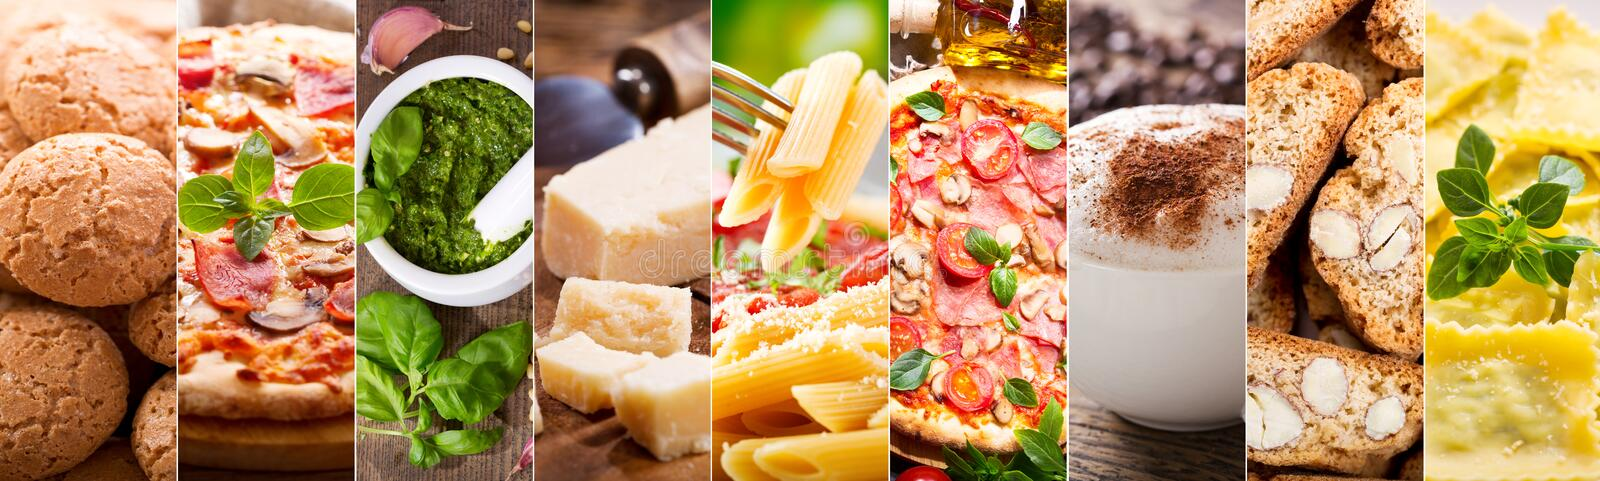 Collage dell'alimento di cucina italiana fotografie stock